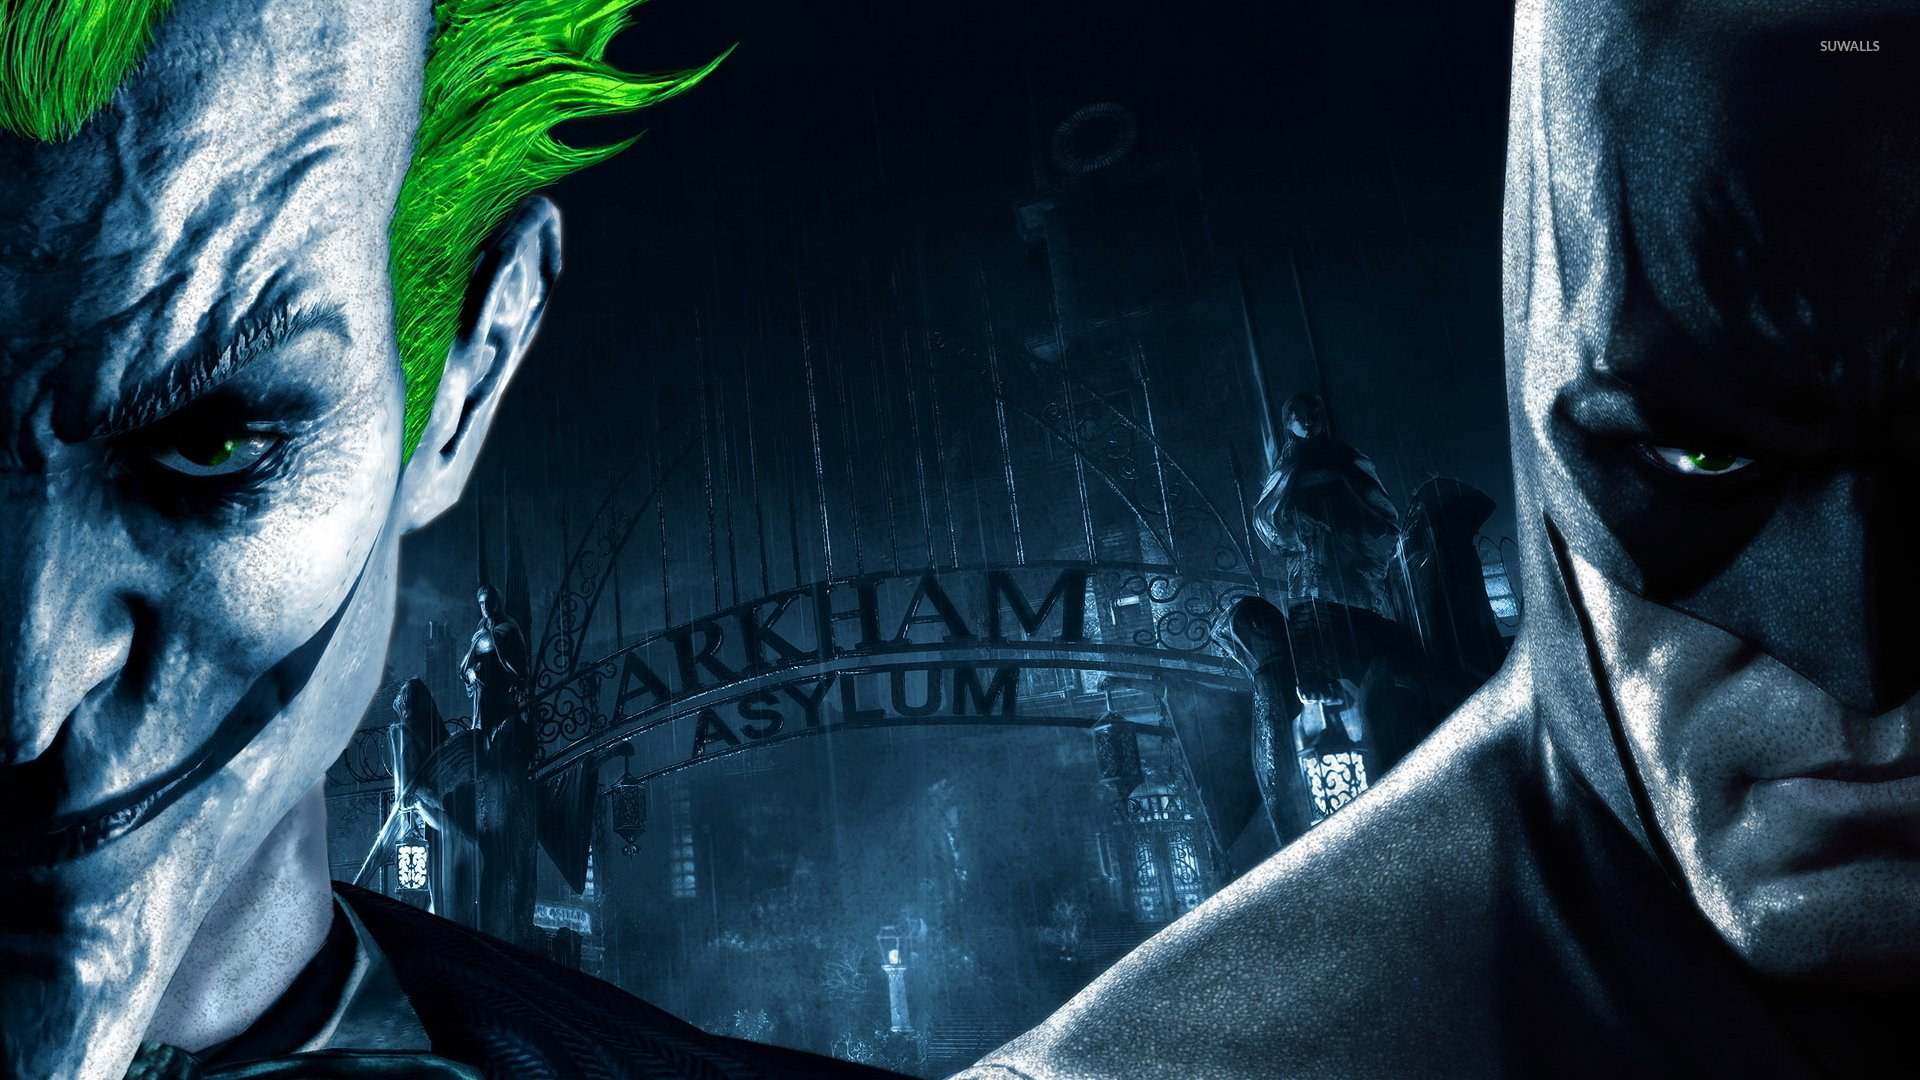 Batman Arkham Asylum wallpaper   Game wallpapers   3759 1920x1080